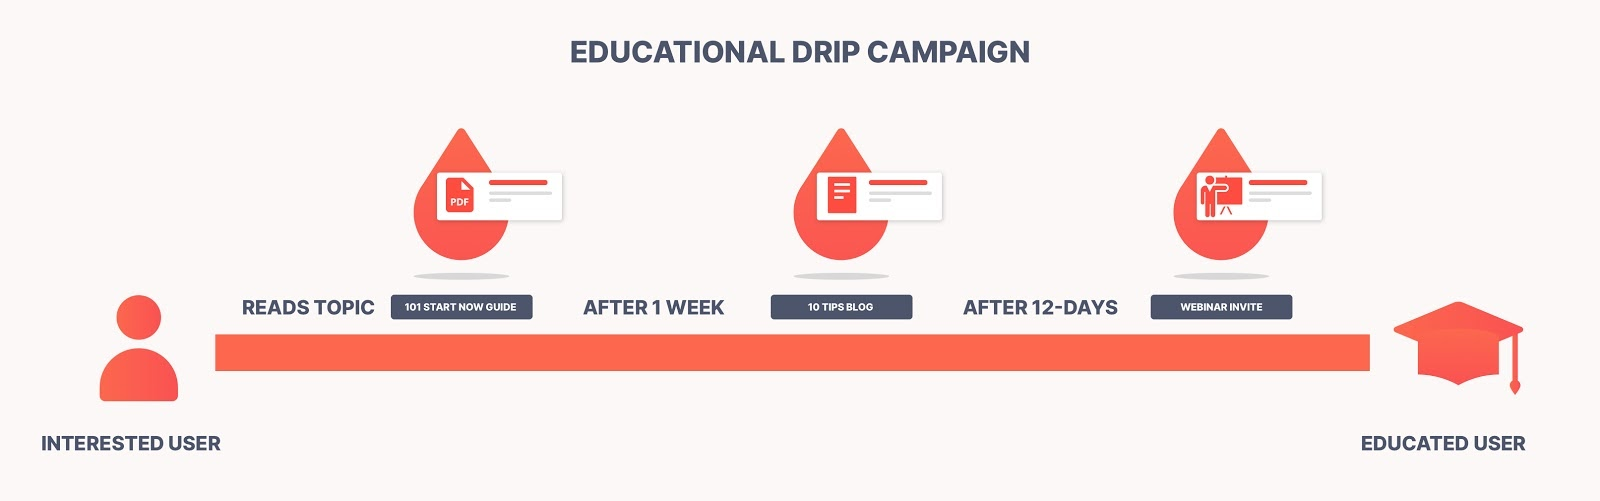 Educational drip campaign illustration